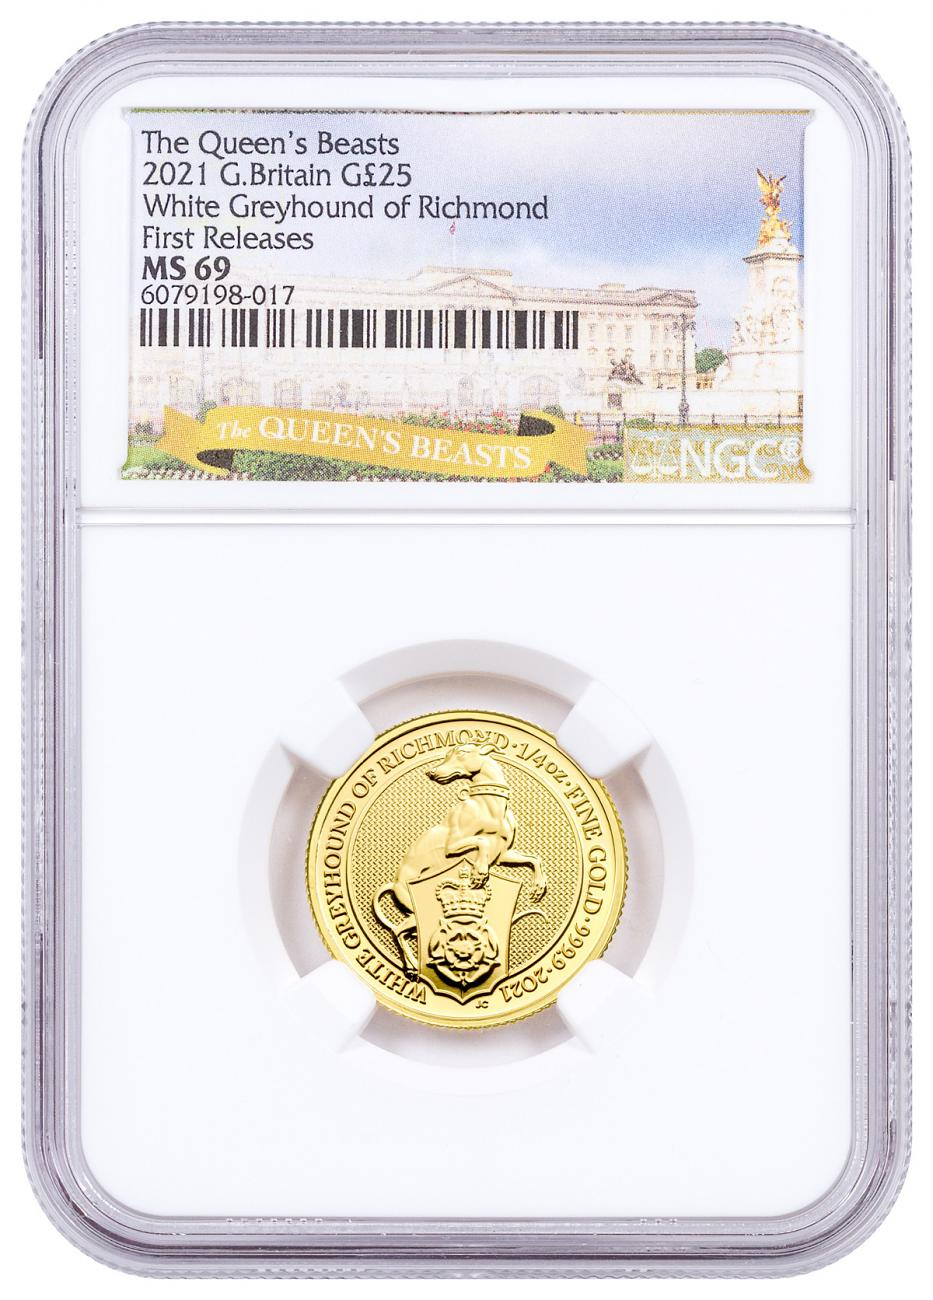 2021 Great Britain 1/4 oz Gold Queen's Beasts - The White Greyhound of Richmond £25 Coin NGC MS69 FR Exclusive Queen's Beasts Label